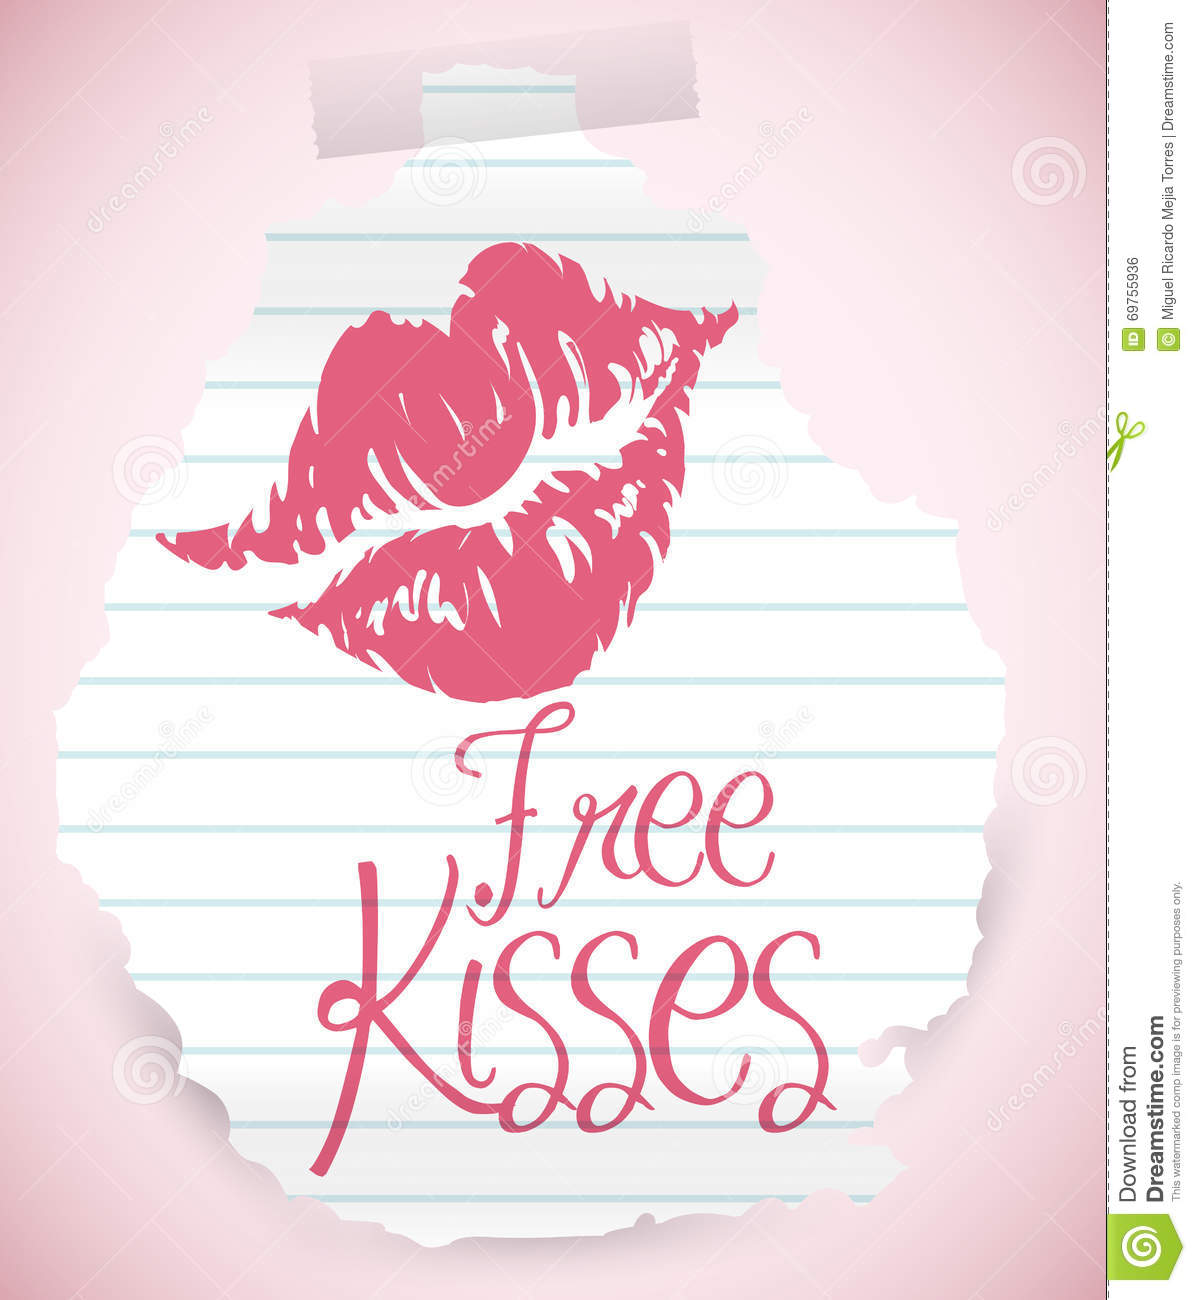 ripped-paper-offering-free-kisses-vector